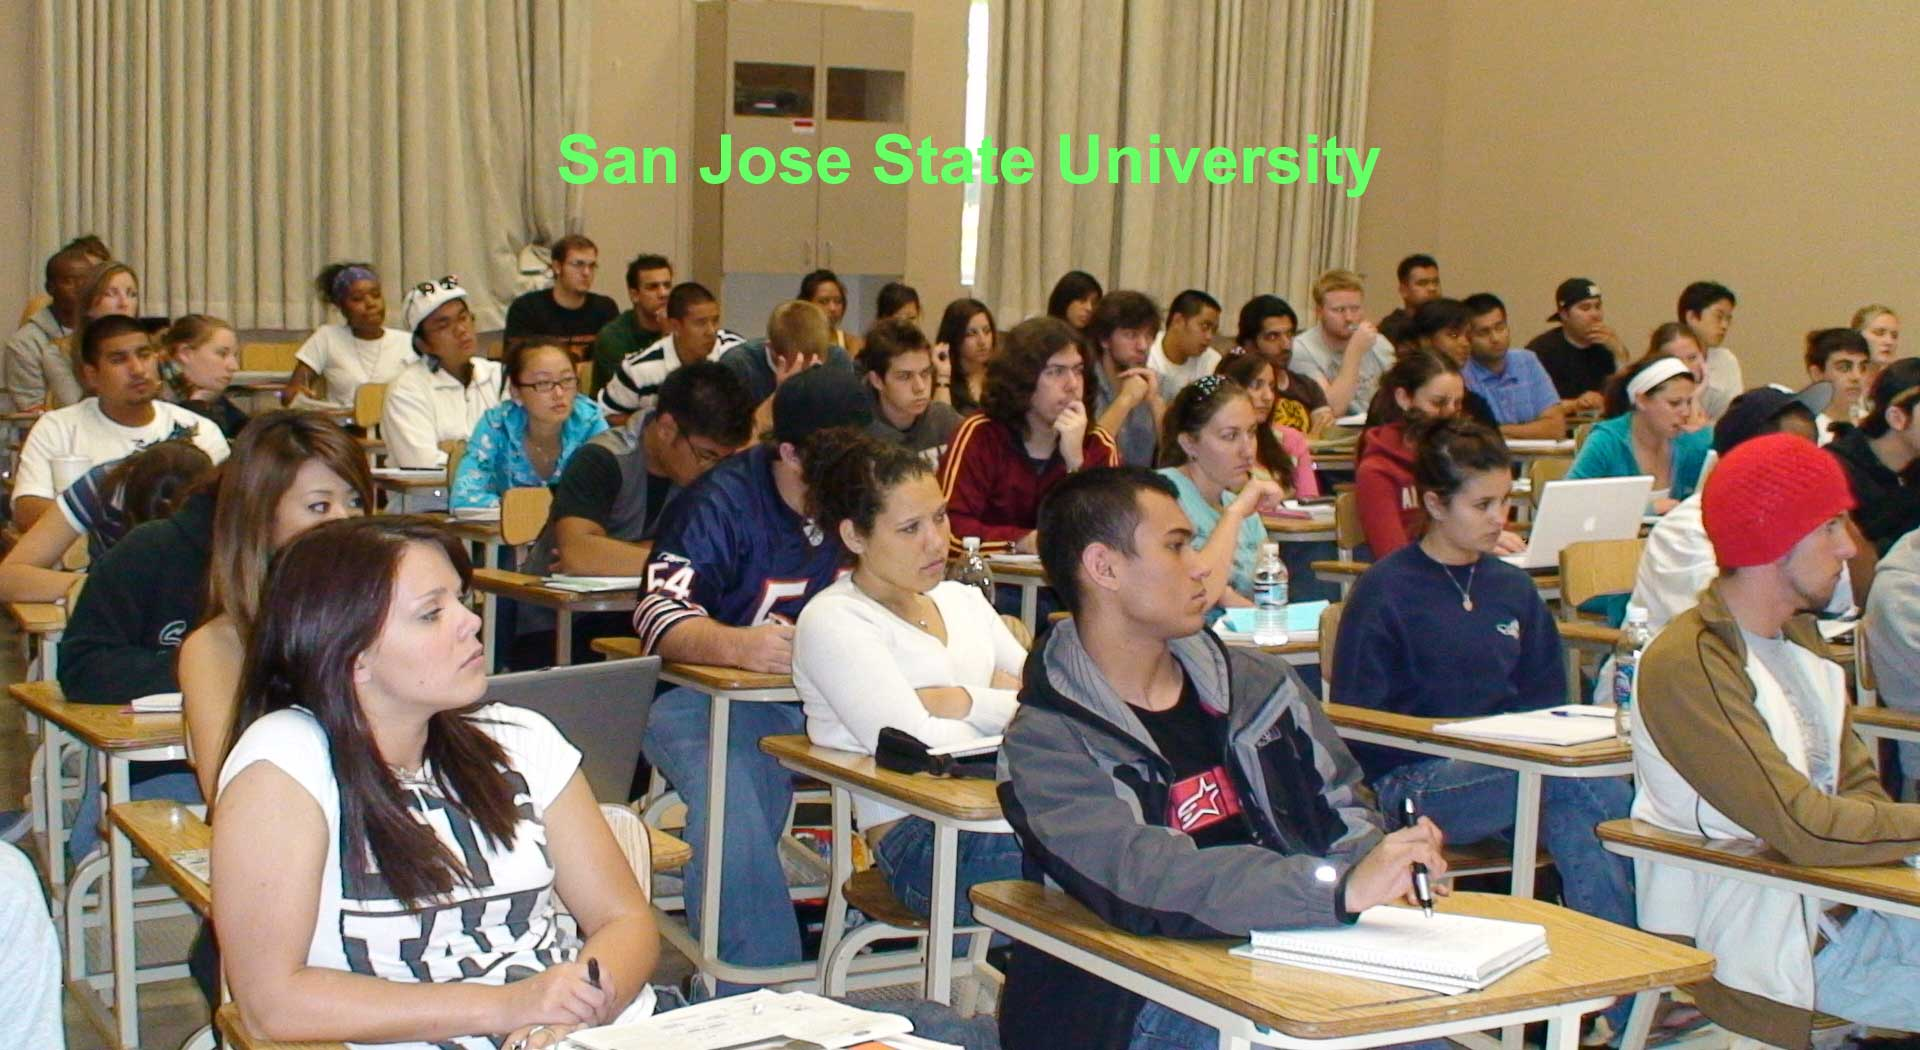 critical thinking classes in college After i was exposed to critical thinking in college classes deseo suscribirme al curso de oxford's free course critical reasoning for beginners will.